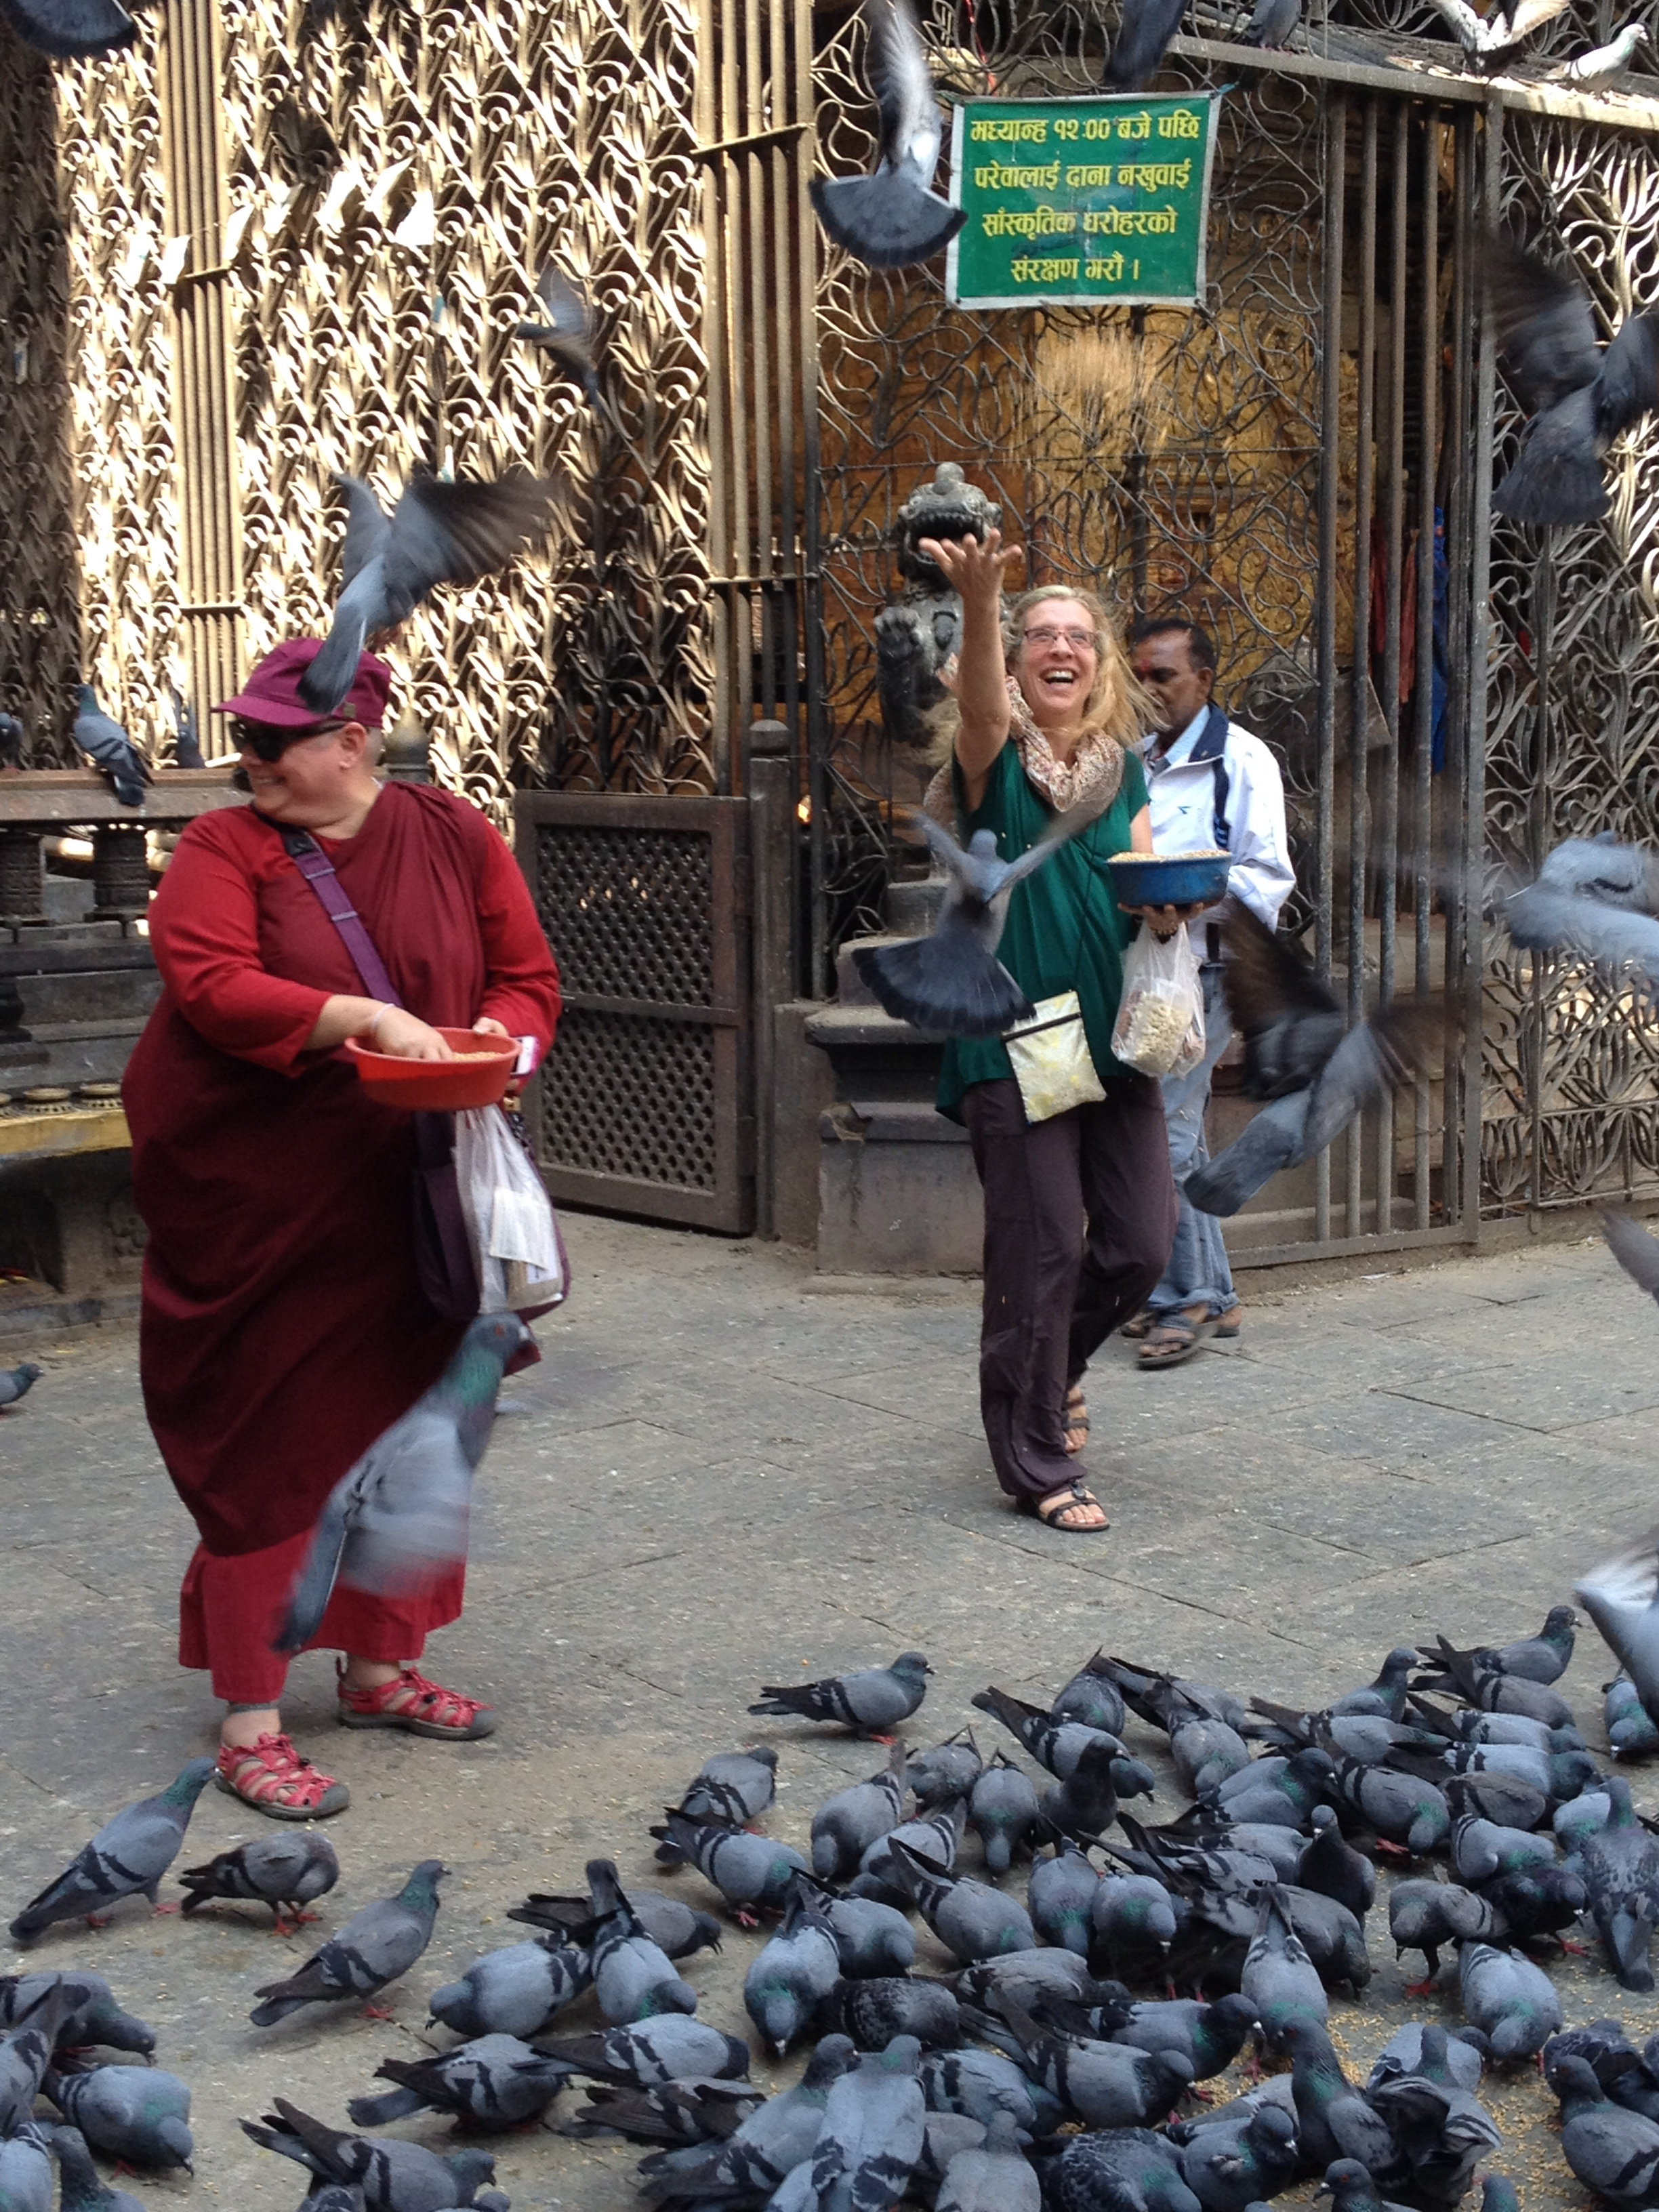 Feeding pidgeons in Durbar Square.jpg